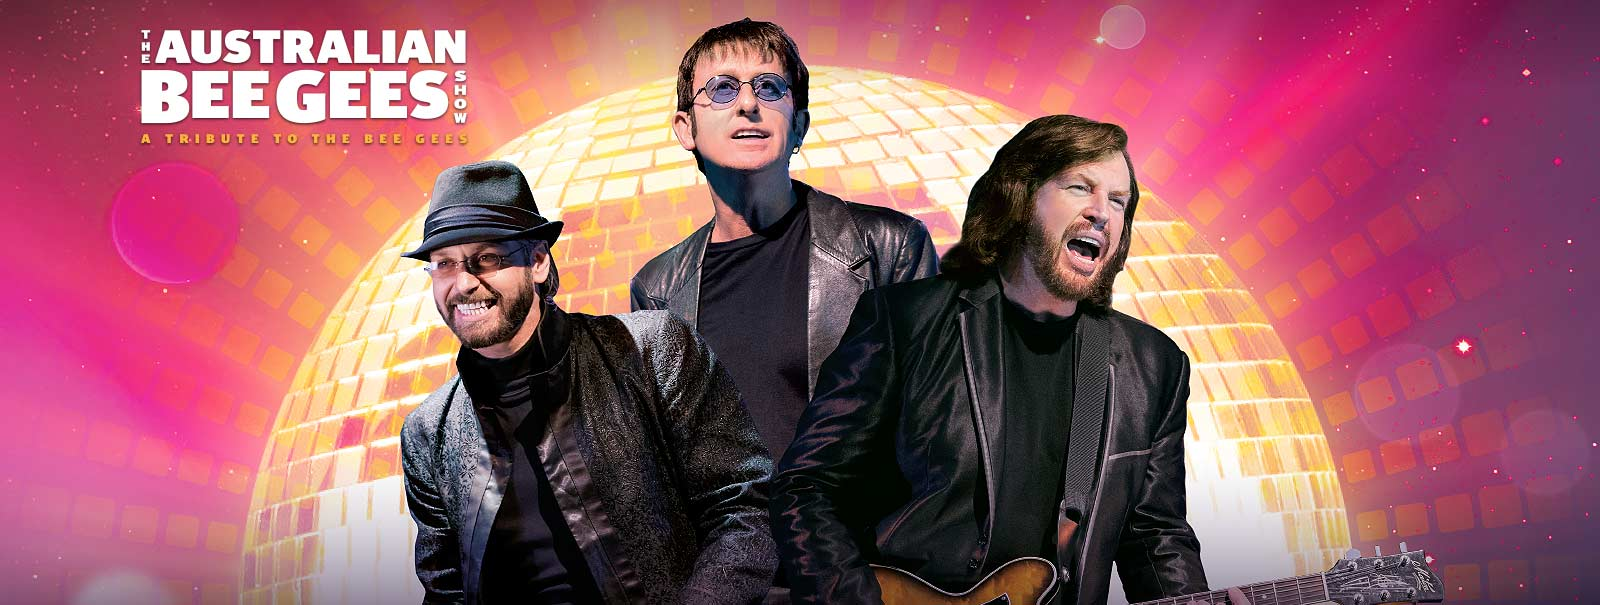 More Info - The Australian Bee Gees Show - A Tribute to the Bee Gees